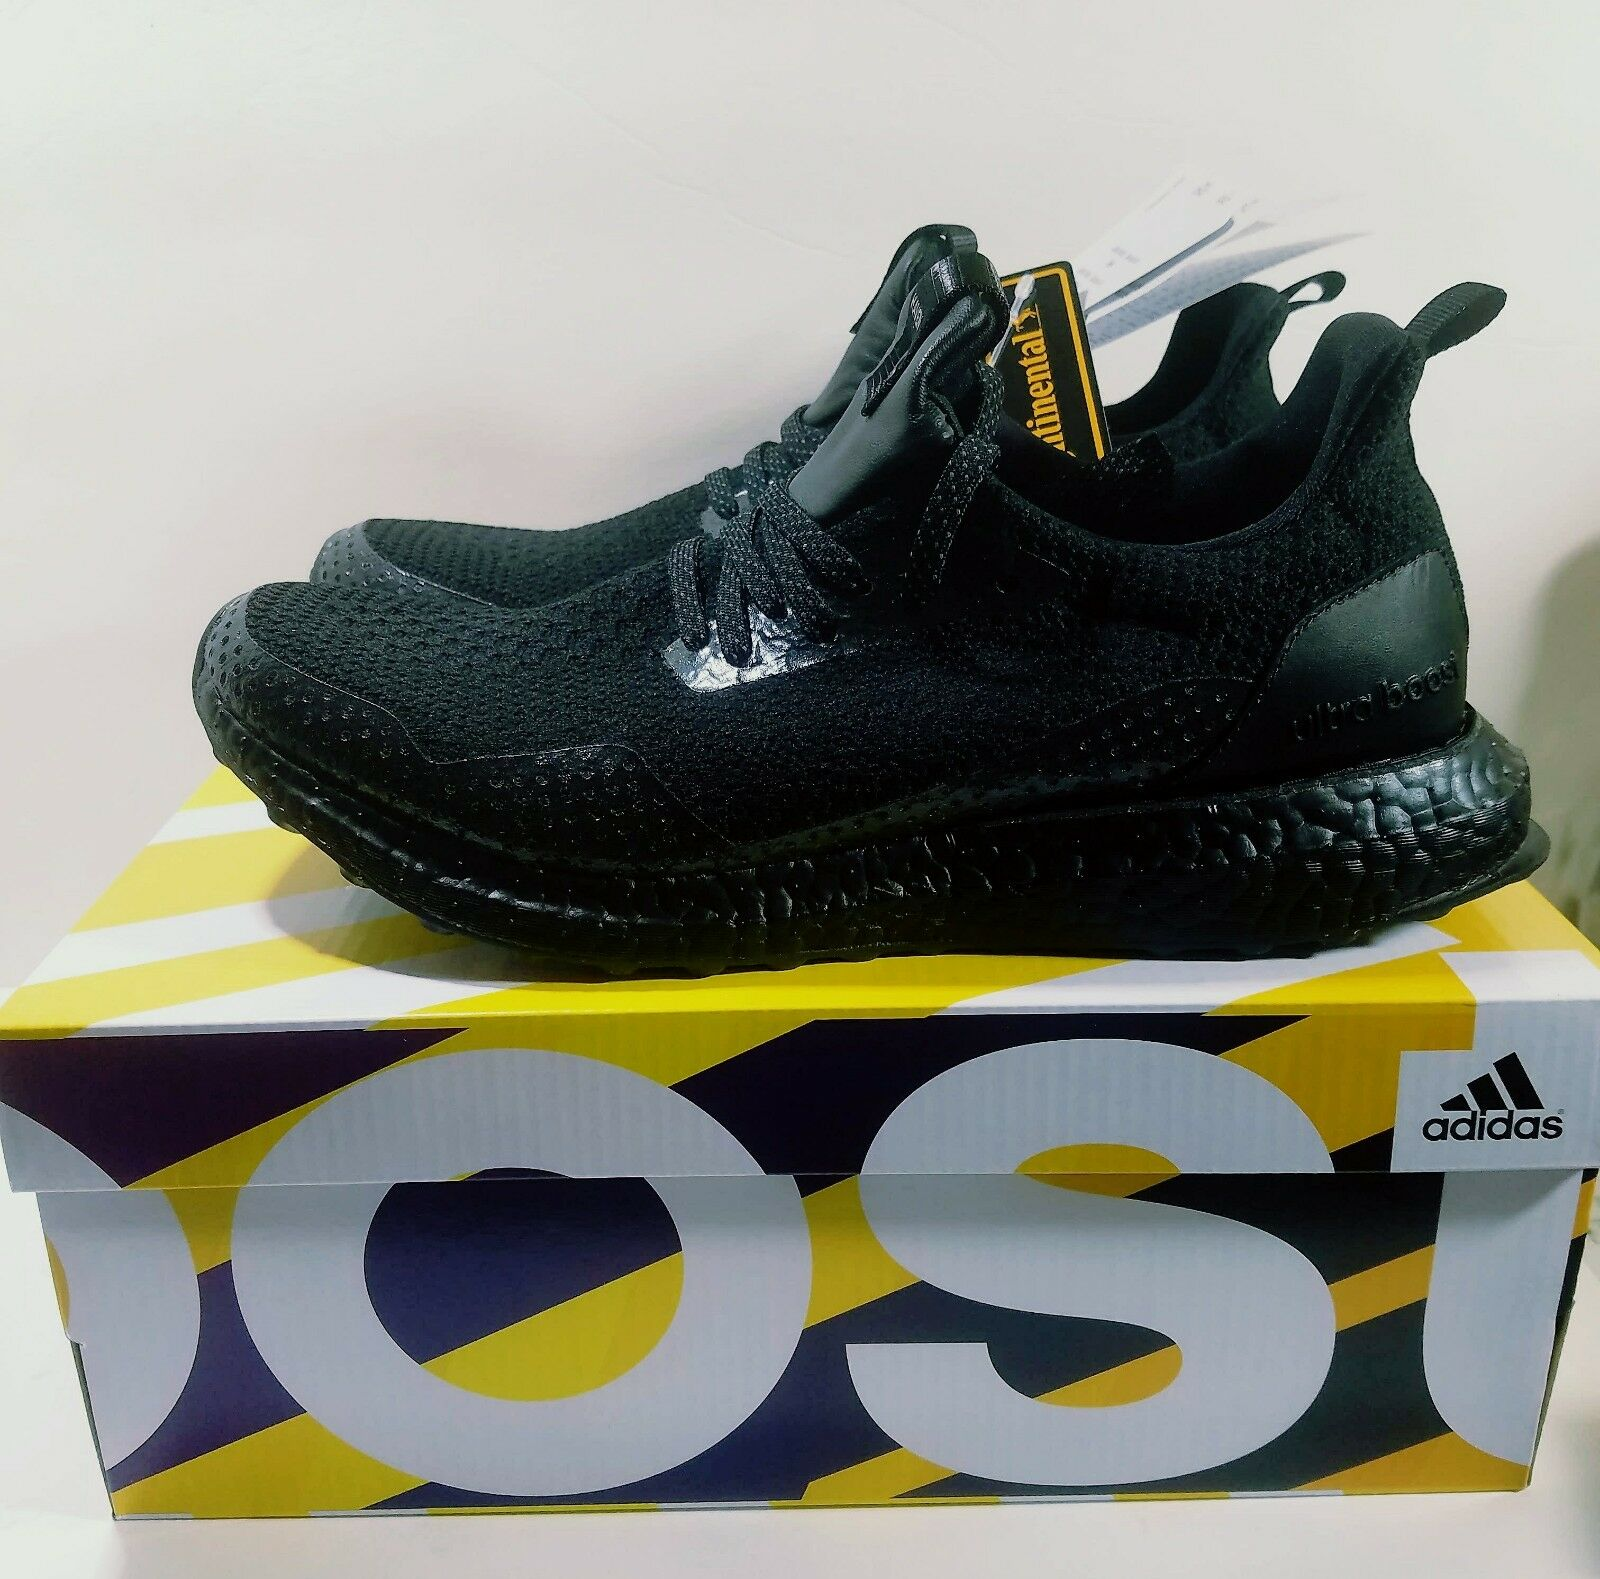 ADIDAS CONSORTIUM X HAVEN ULTRA BOOST UNCAGED US